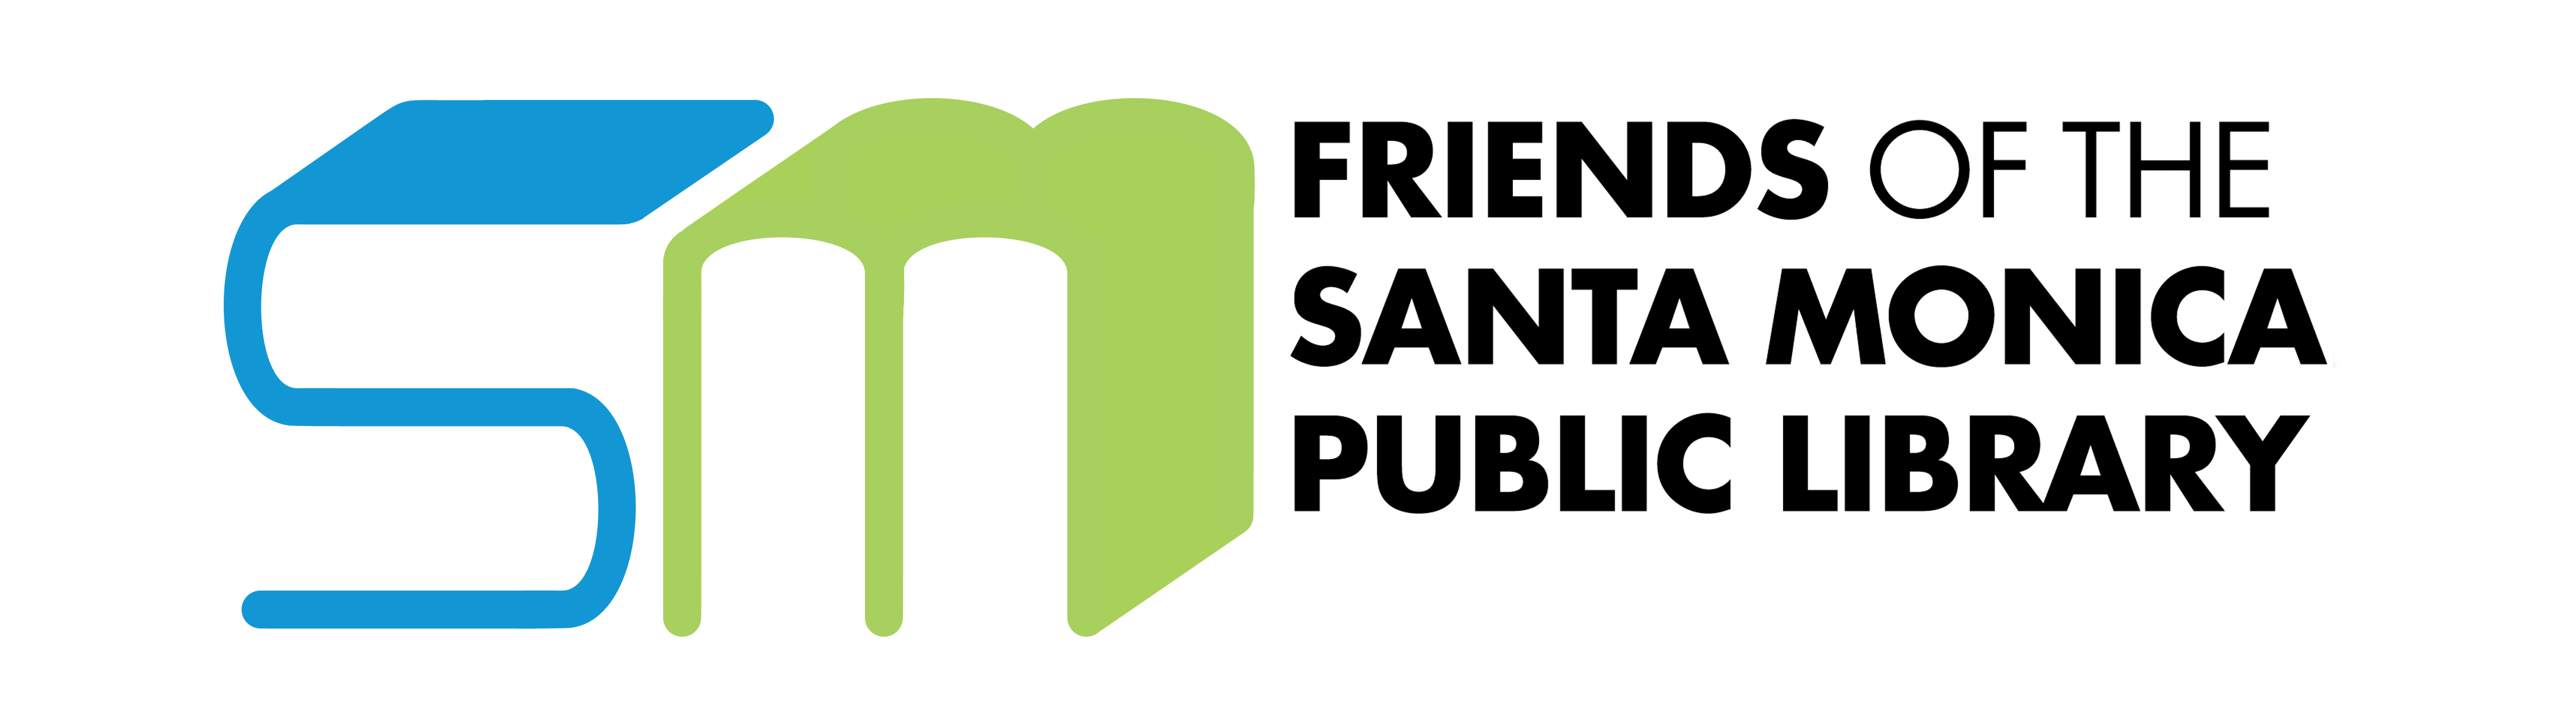 Friends of the Santa Monica Public Library